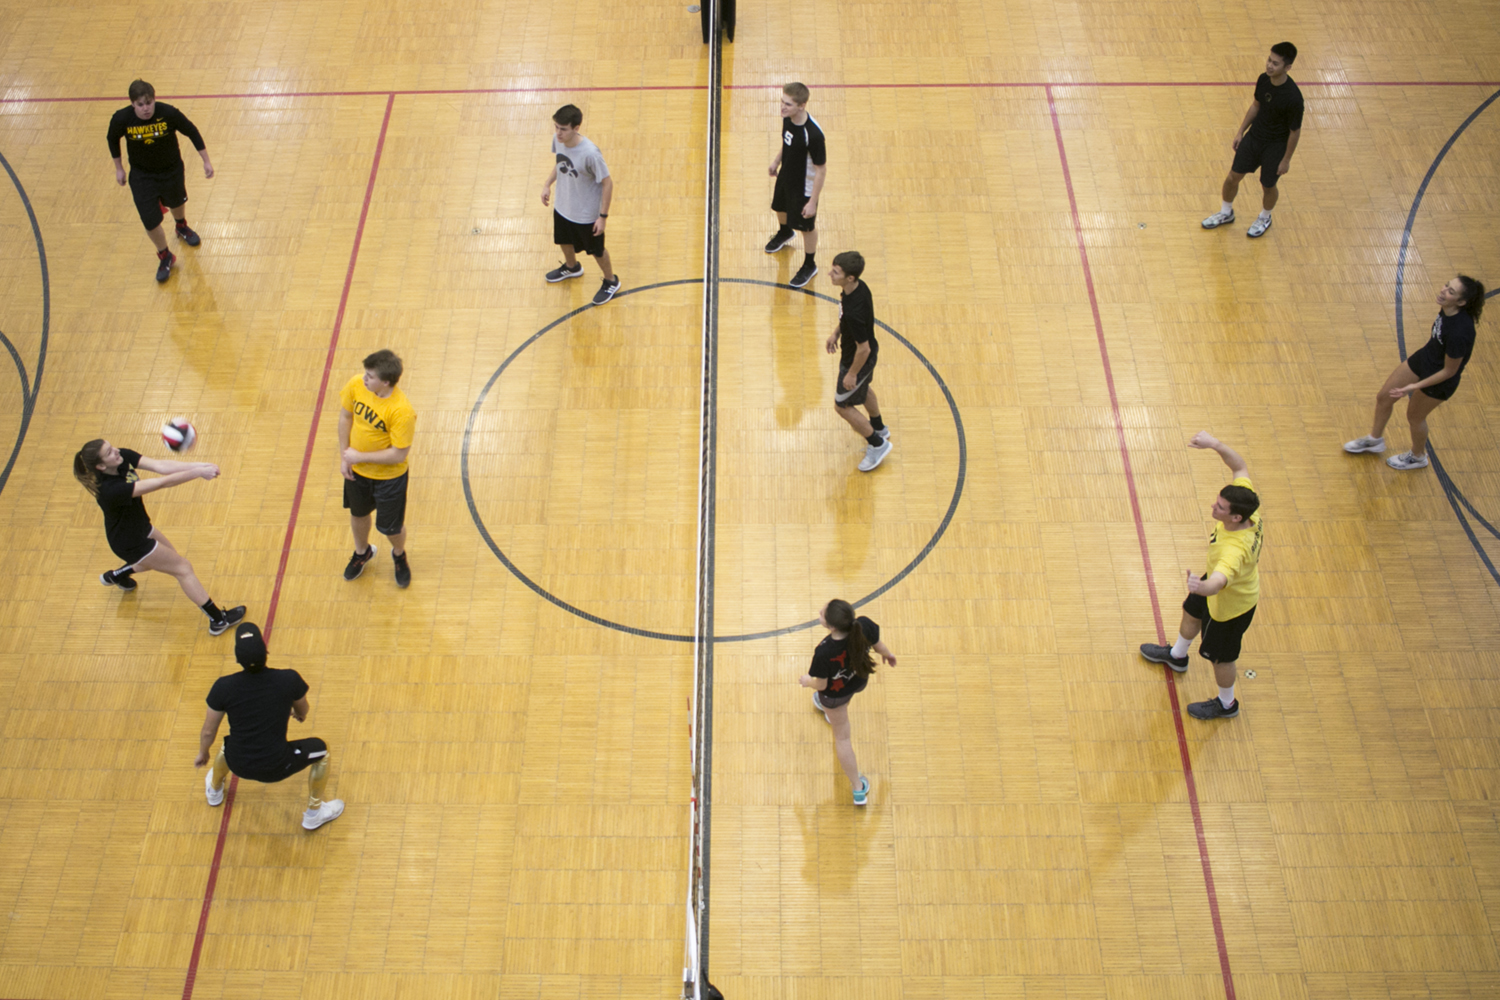 University of Iowa students play a charity game of volleyball in the Field House on Sunday, Dec. 3, 2017.